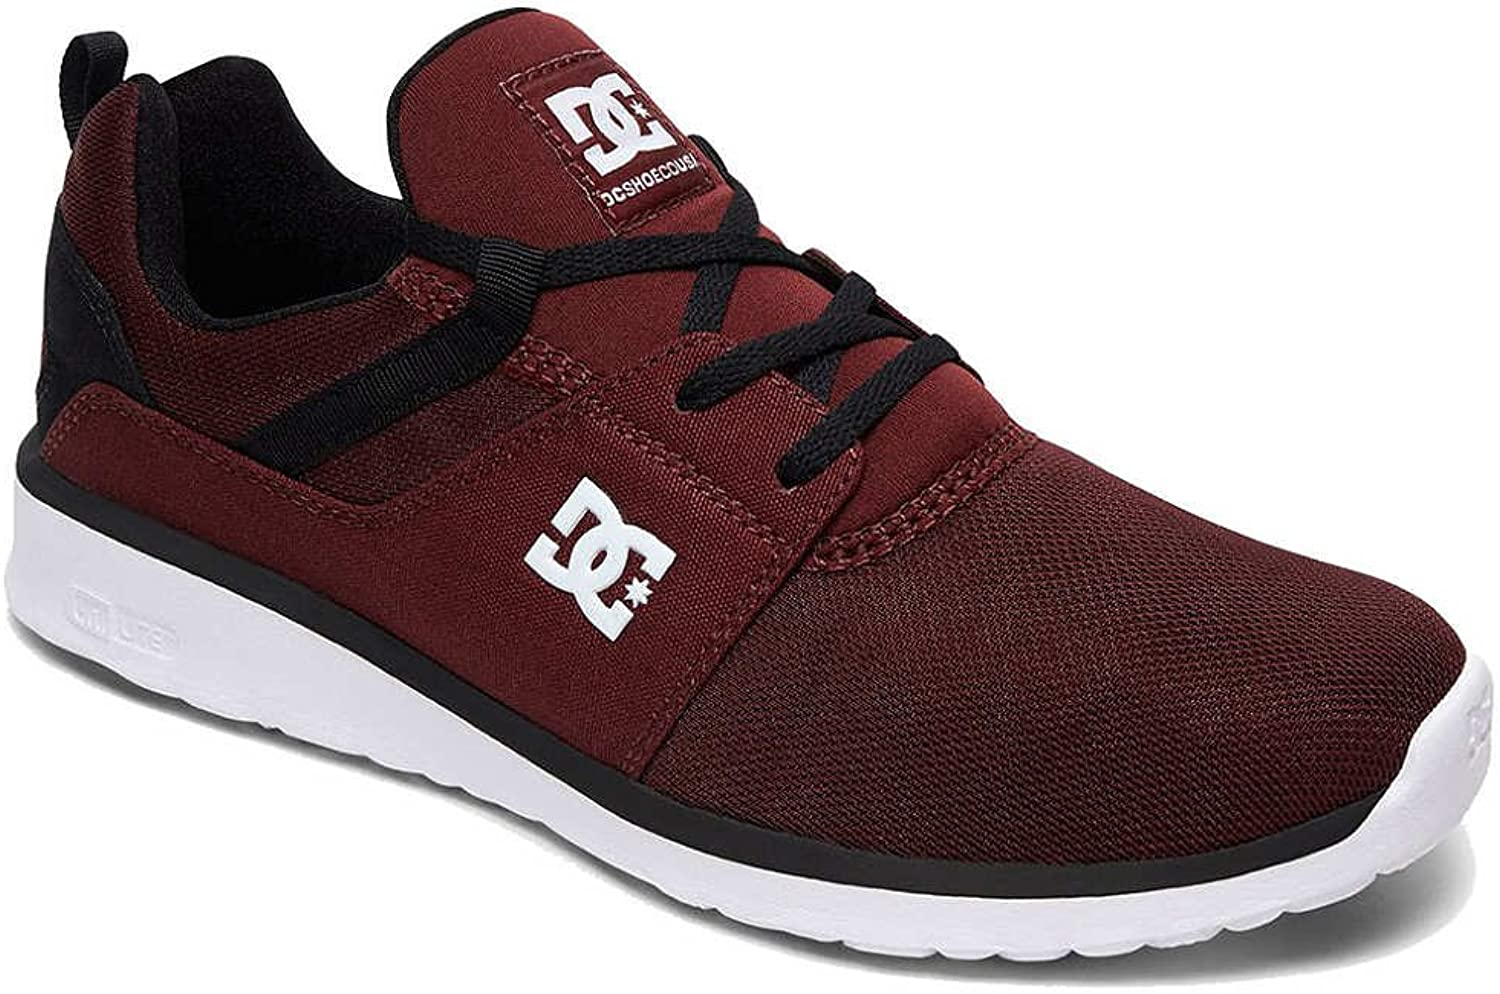 DC shoes Heathrow Trainers in Burgundy